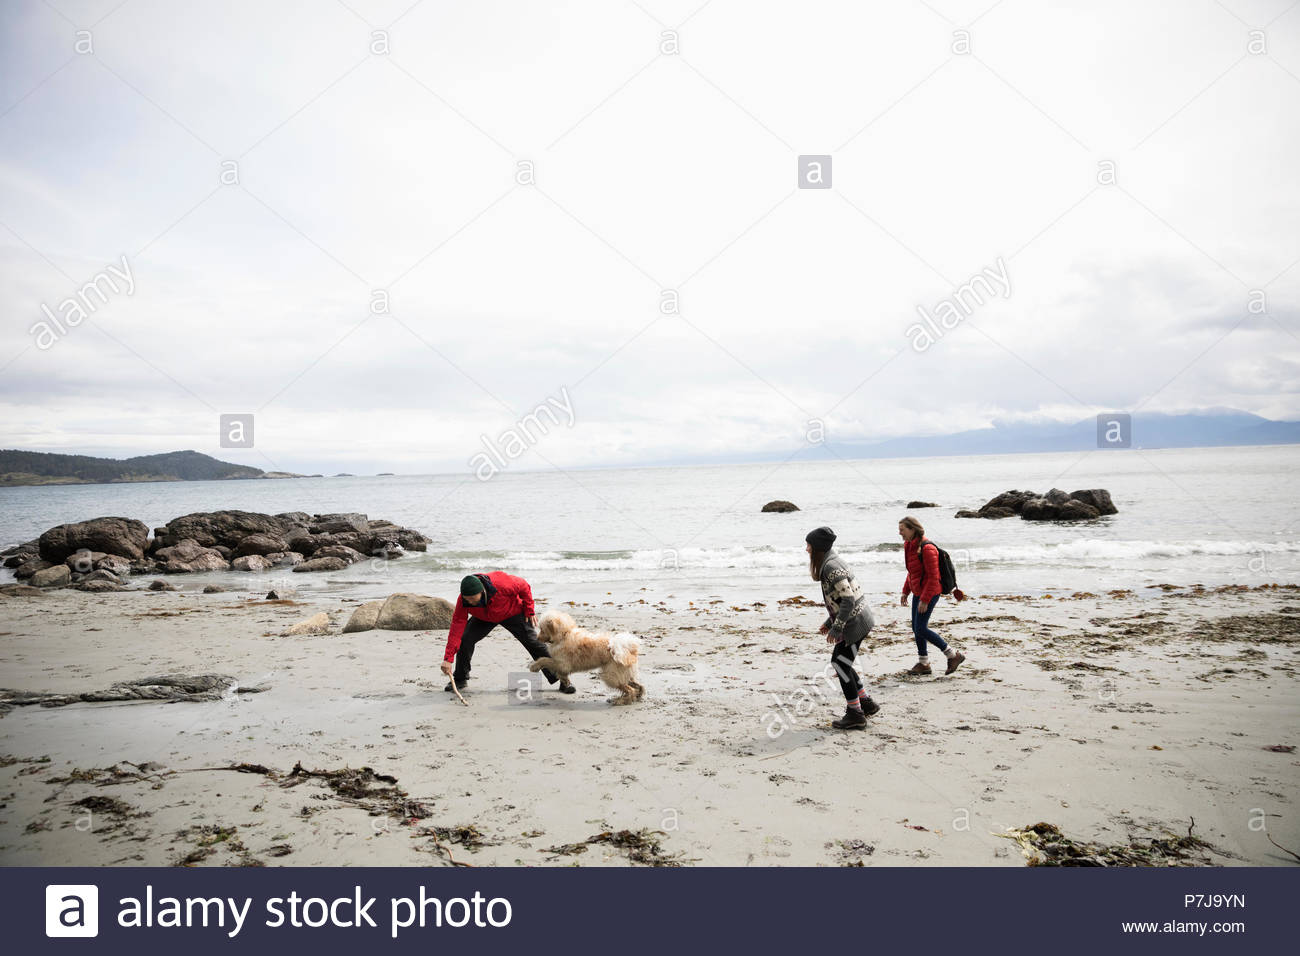 Family with dog playing on rugged beach Stock Photo